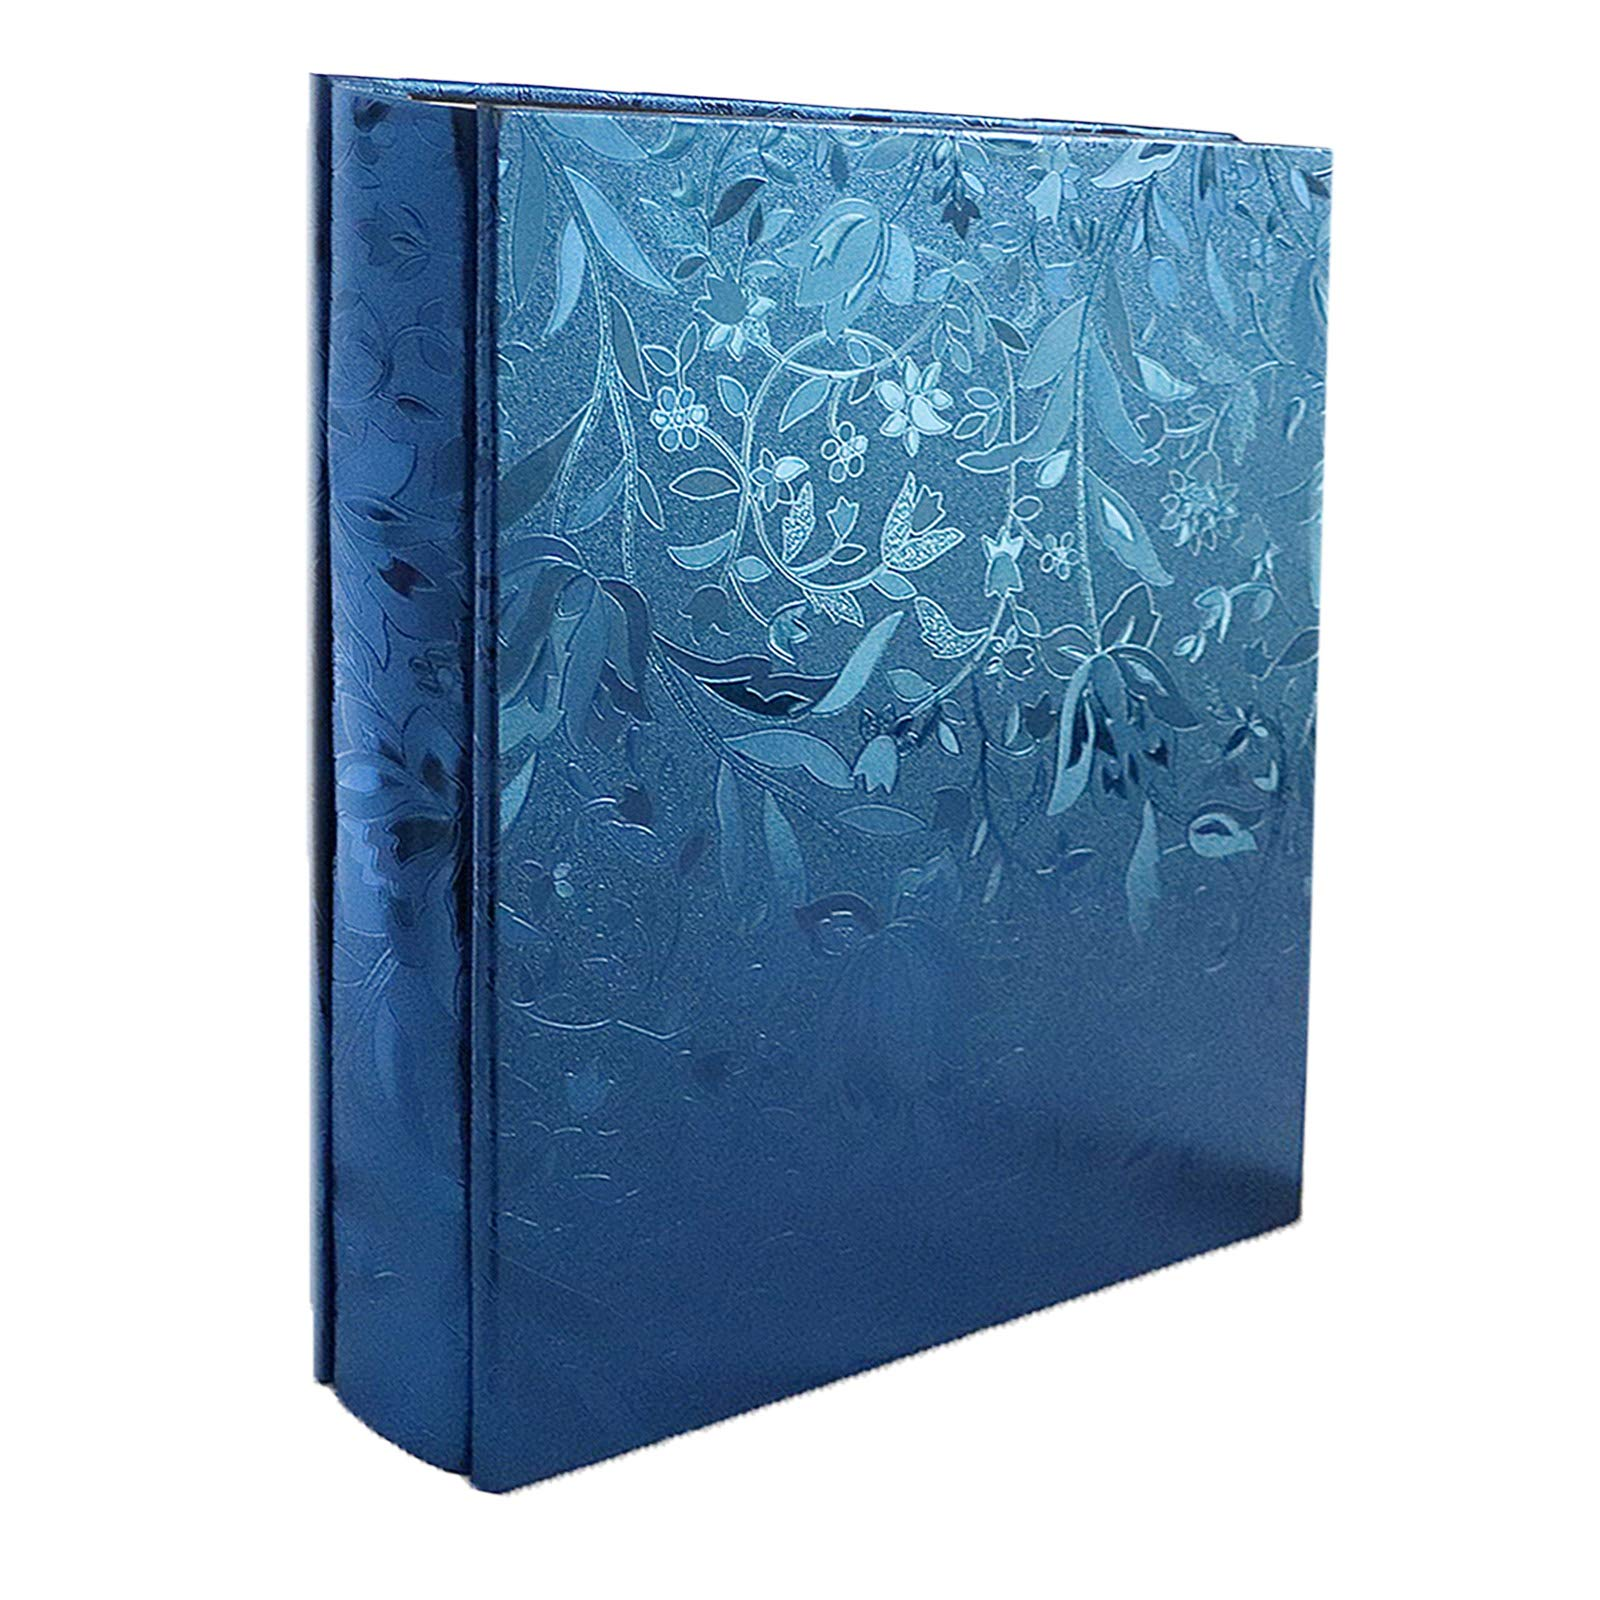 RECUTMS 600 Photo Picture Album PU Leather Cover Sewn Bonded Memo Album Slots Album Holds 4x6 Photos 5 Per Page Family Alum Gift for Mother Father